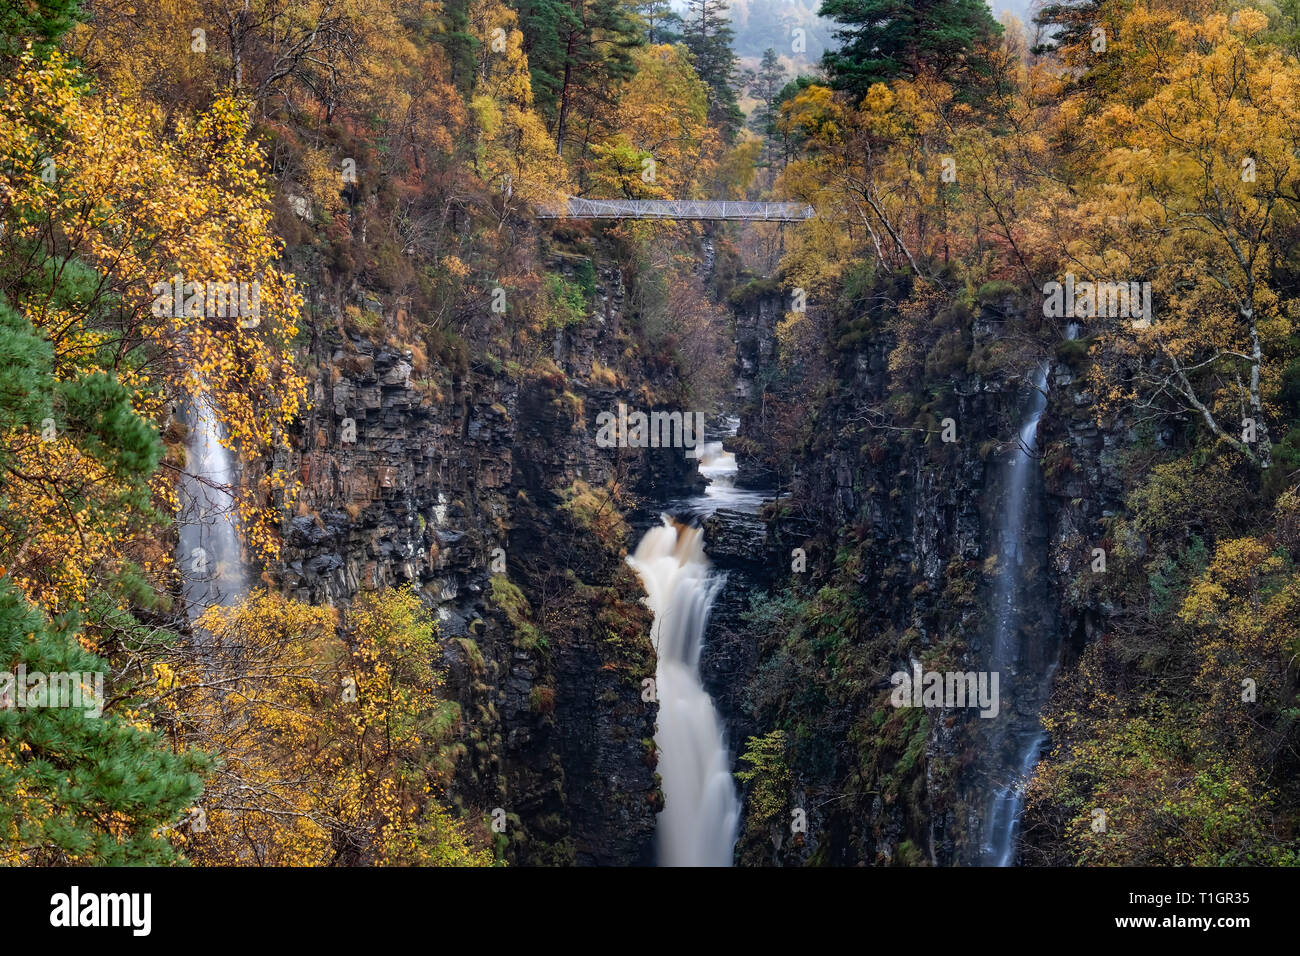 The Corrieshalloch Gorge, Falls of Measach and River Droma, near Ullapool, Ross and Cromarty, Scottish Highlands, Scotland, UK - Stock Image